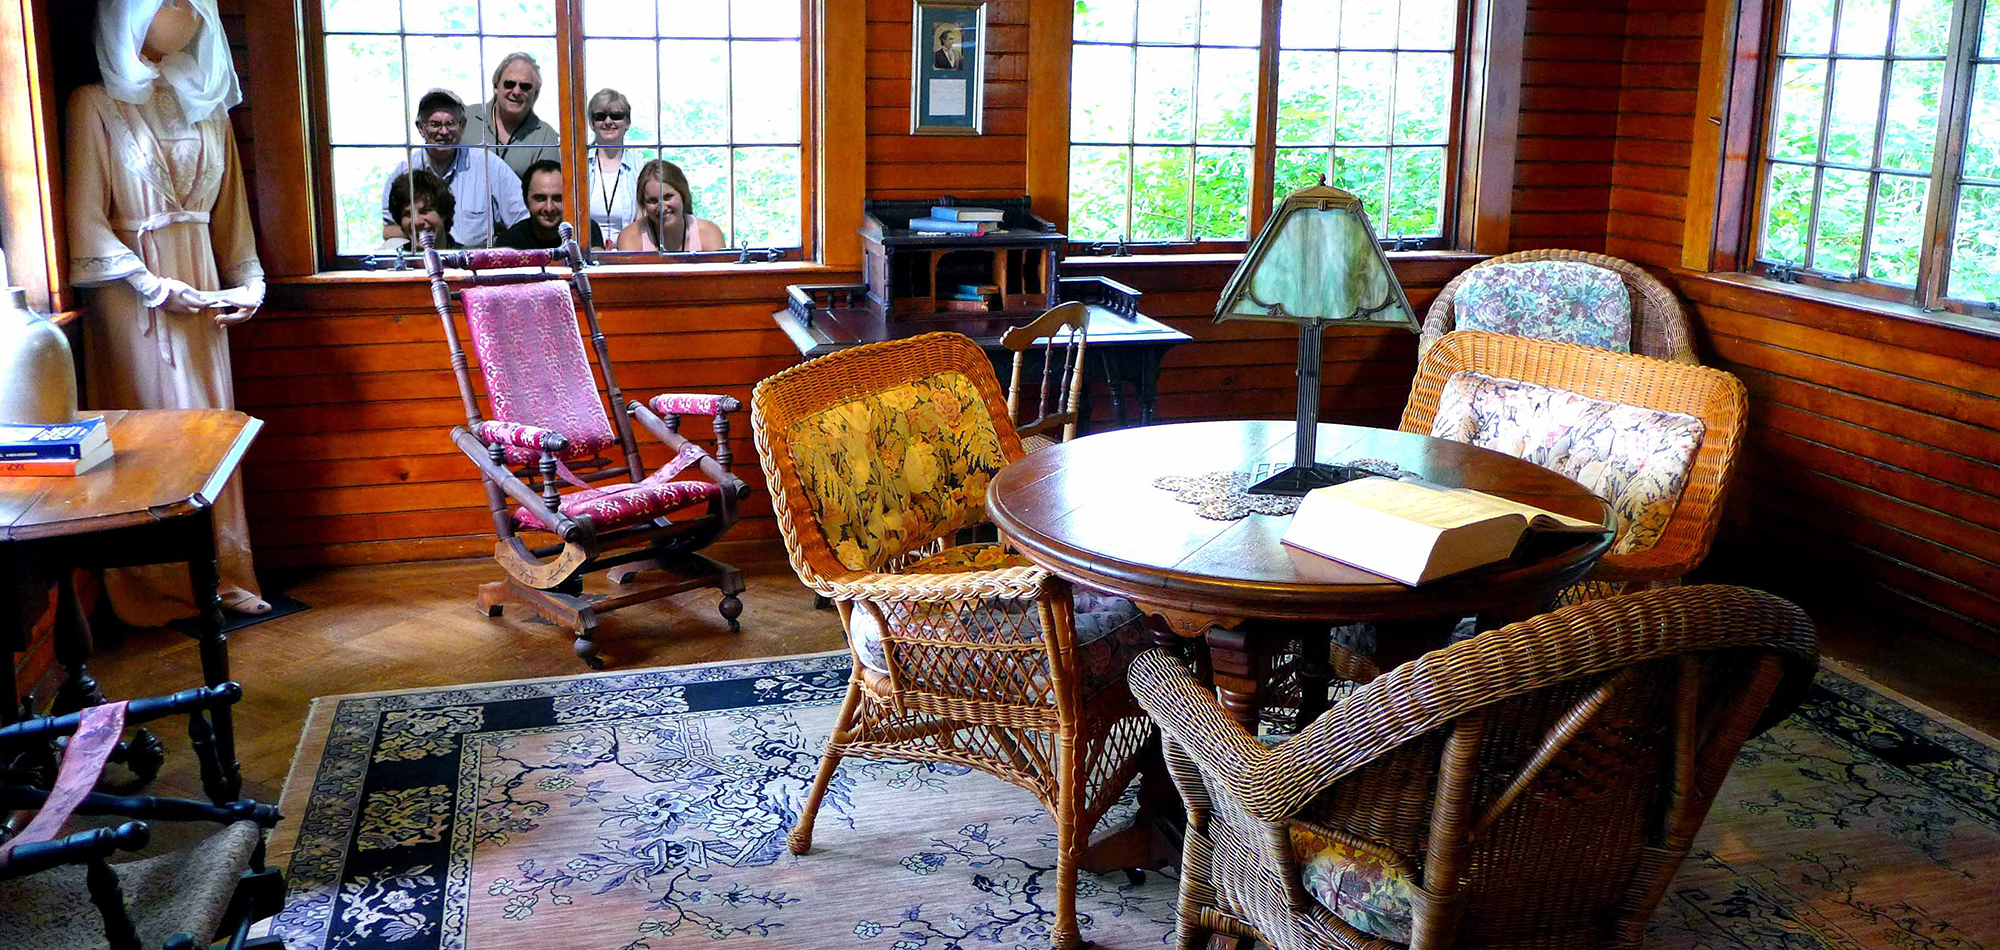 Some of the 2008 O'Neill Center Theater Critics peer into the sun room at Monte Cristo Cottage, set up to reflect the stage directions for Eugene O'Neill's final play Long Day's Journey into Night. (David Lyon for The Boston Globe)